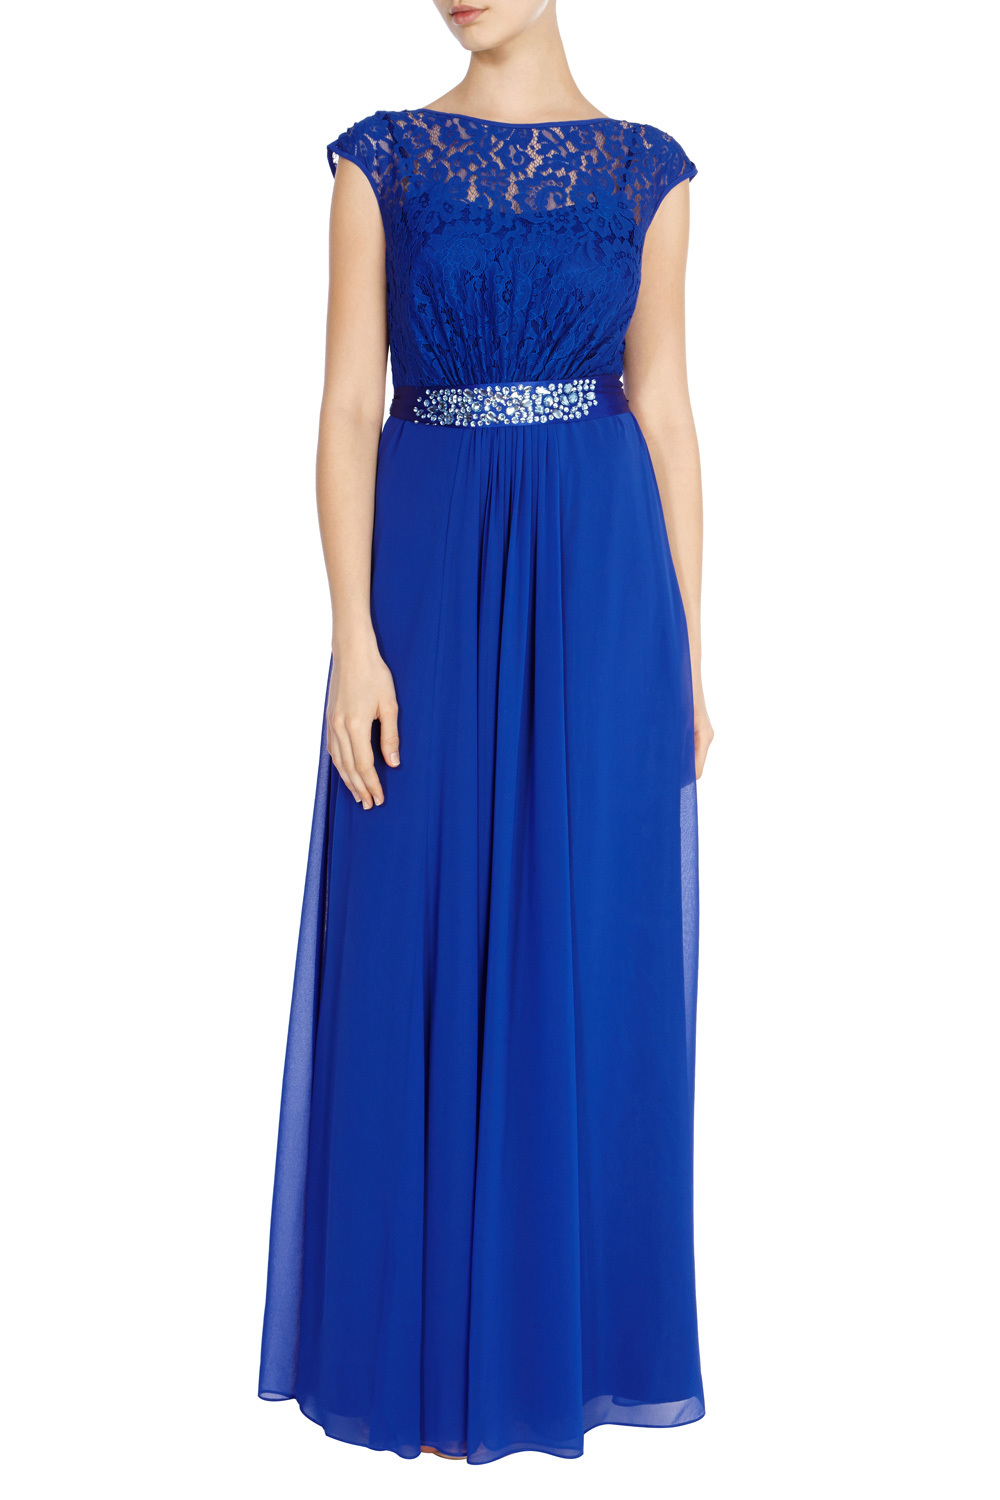 Lori Lee Lace Maxi Dress - sleeve style: capped; style: maxi dress; predominant colour: royal blue; length: floor length; fit: fitted at waist & bust; fibres: polyester/polyamide - 100%; occasions: occasion; neckline: crew; hip detail: subtle/flattering hip detail; waist detail: feature waist detail; sleeve length: short sleeve; texture group: sheer fabrics/chiffon/organza etc.; pattern type: fabric; pattern: patterned/print; embellishment: lace; shoulder detail: sheer at shoulder; season: s/s 2016; wardrobe: event; embellishment location: top